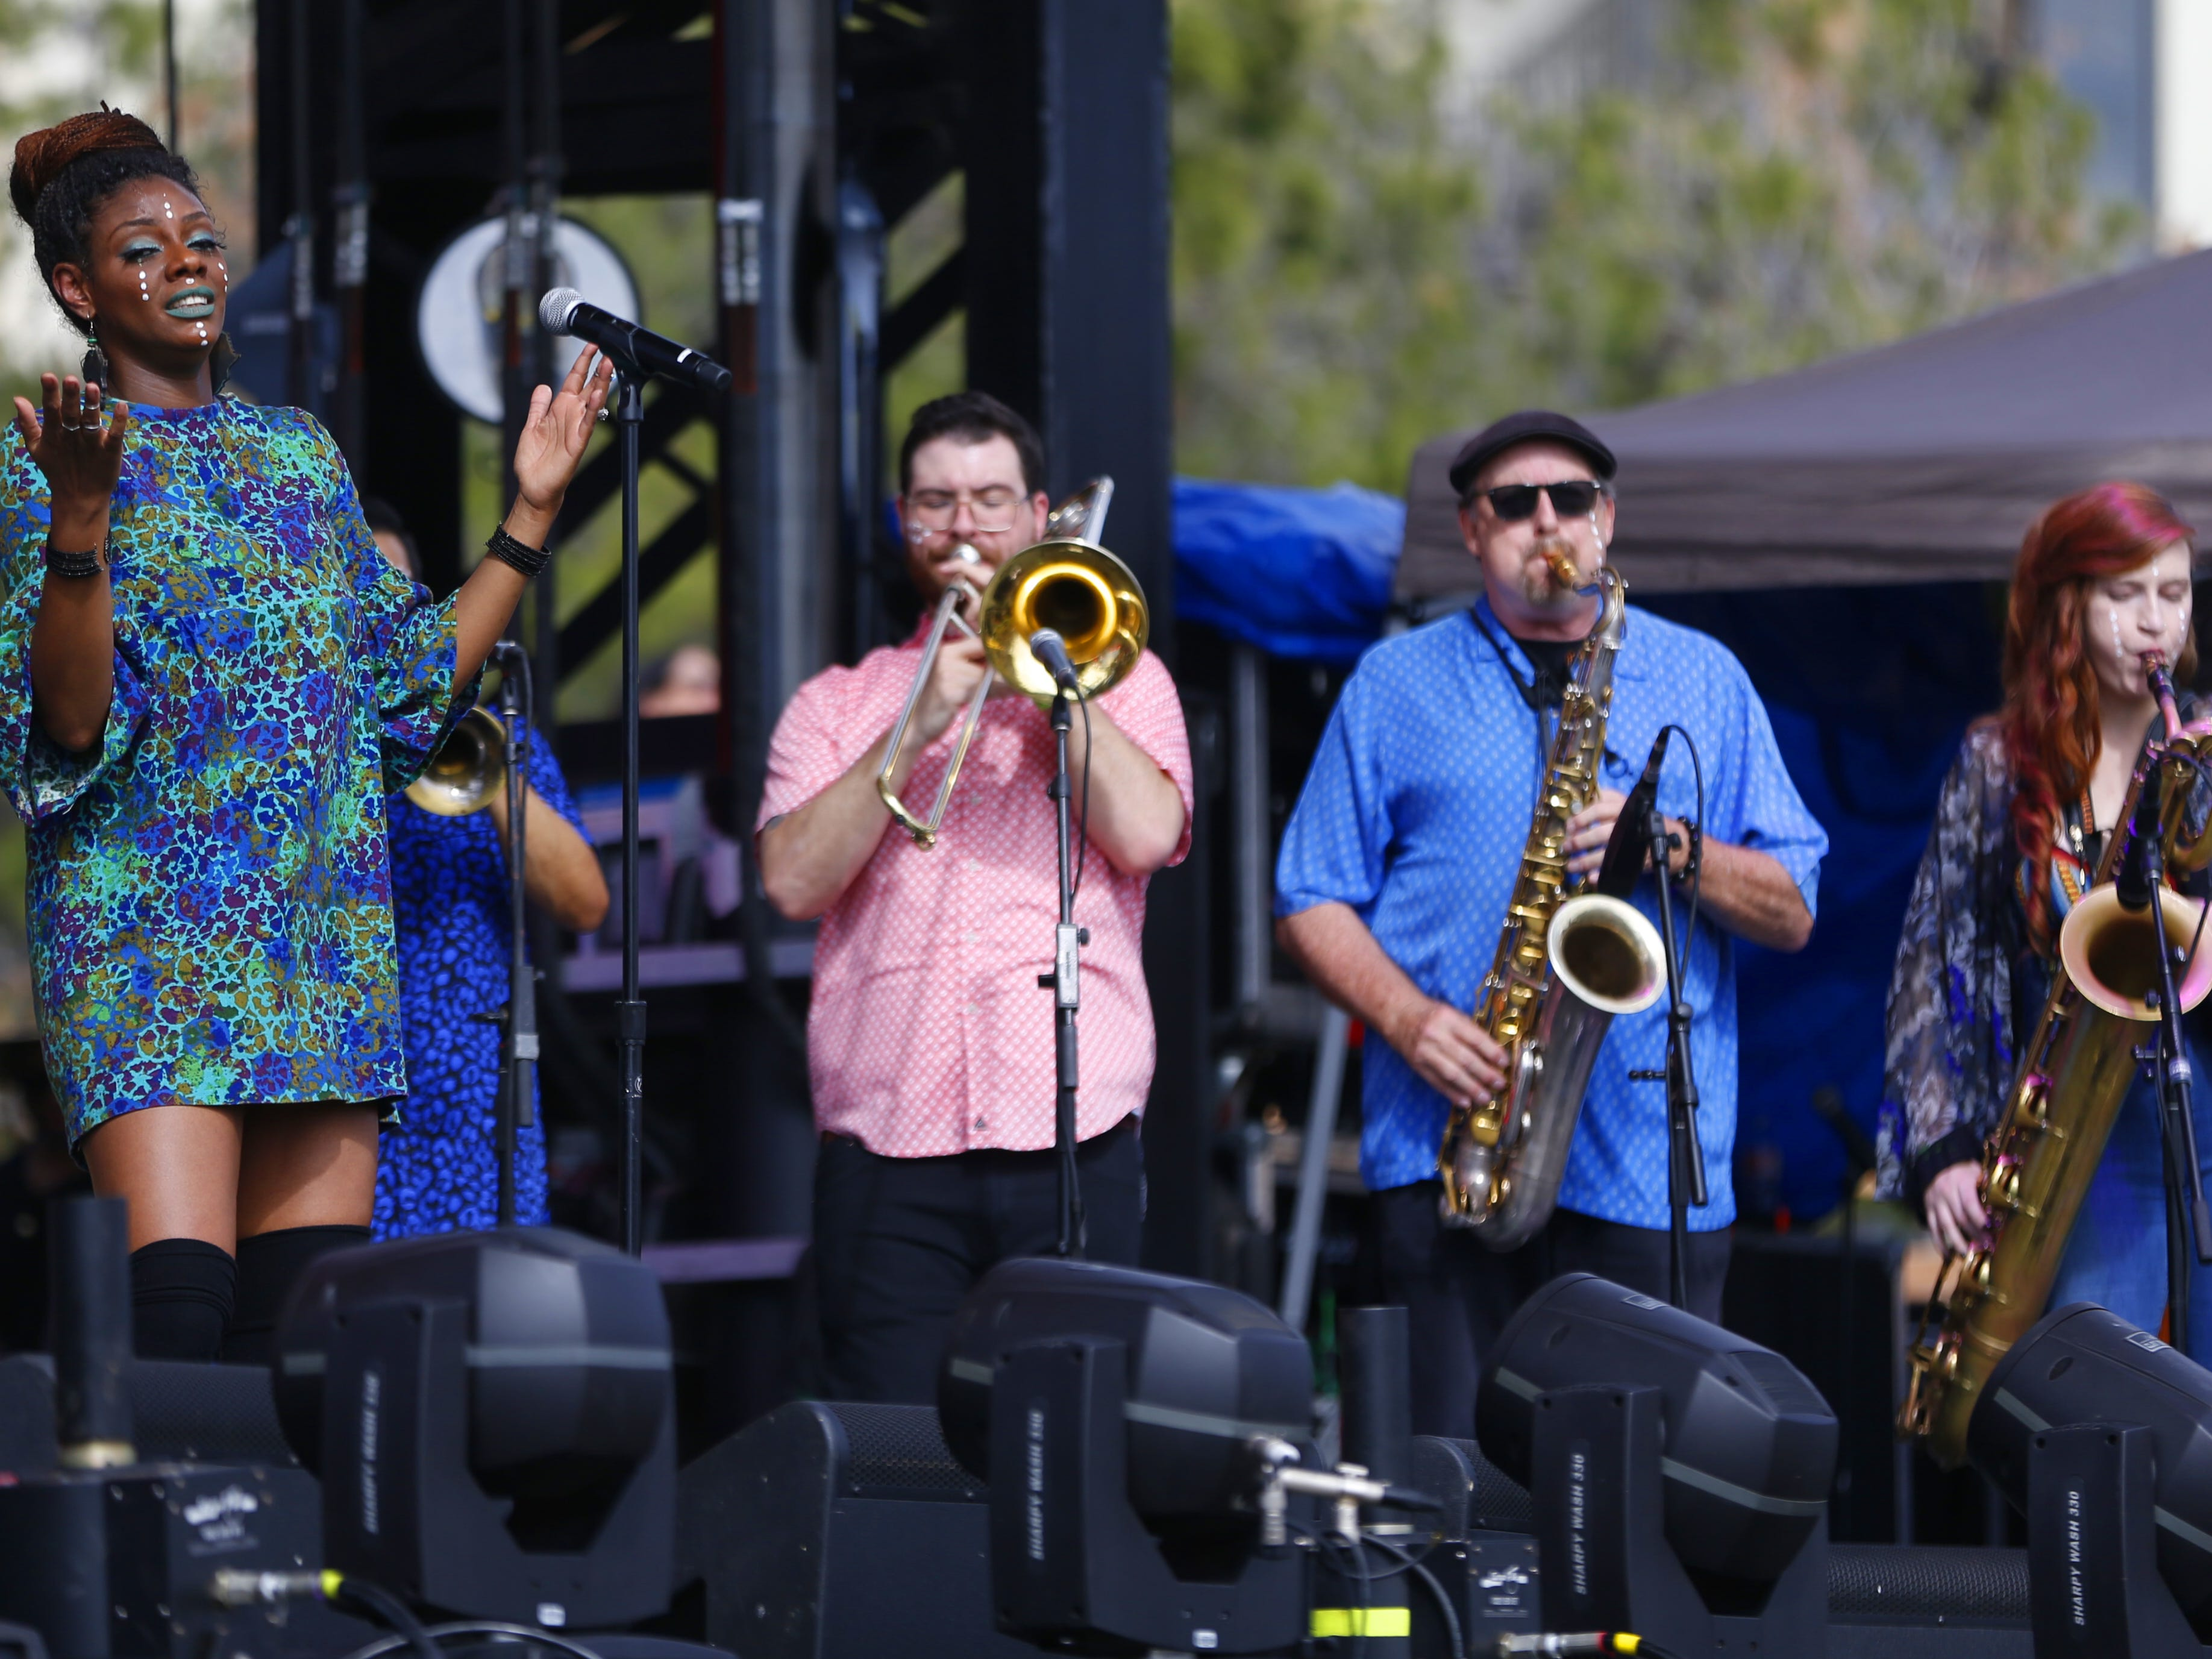 Phoenix Afrobeat Orchestra performs in the afternoon during the McDowell Mountain Music Festival in Phoenix, Ariz. on March 2, 2019.